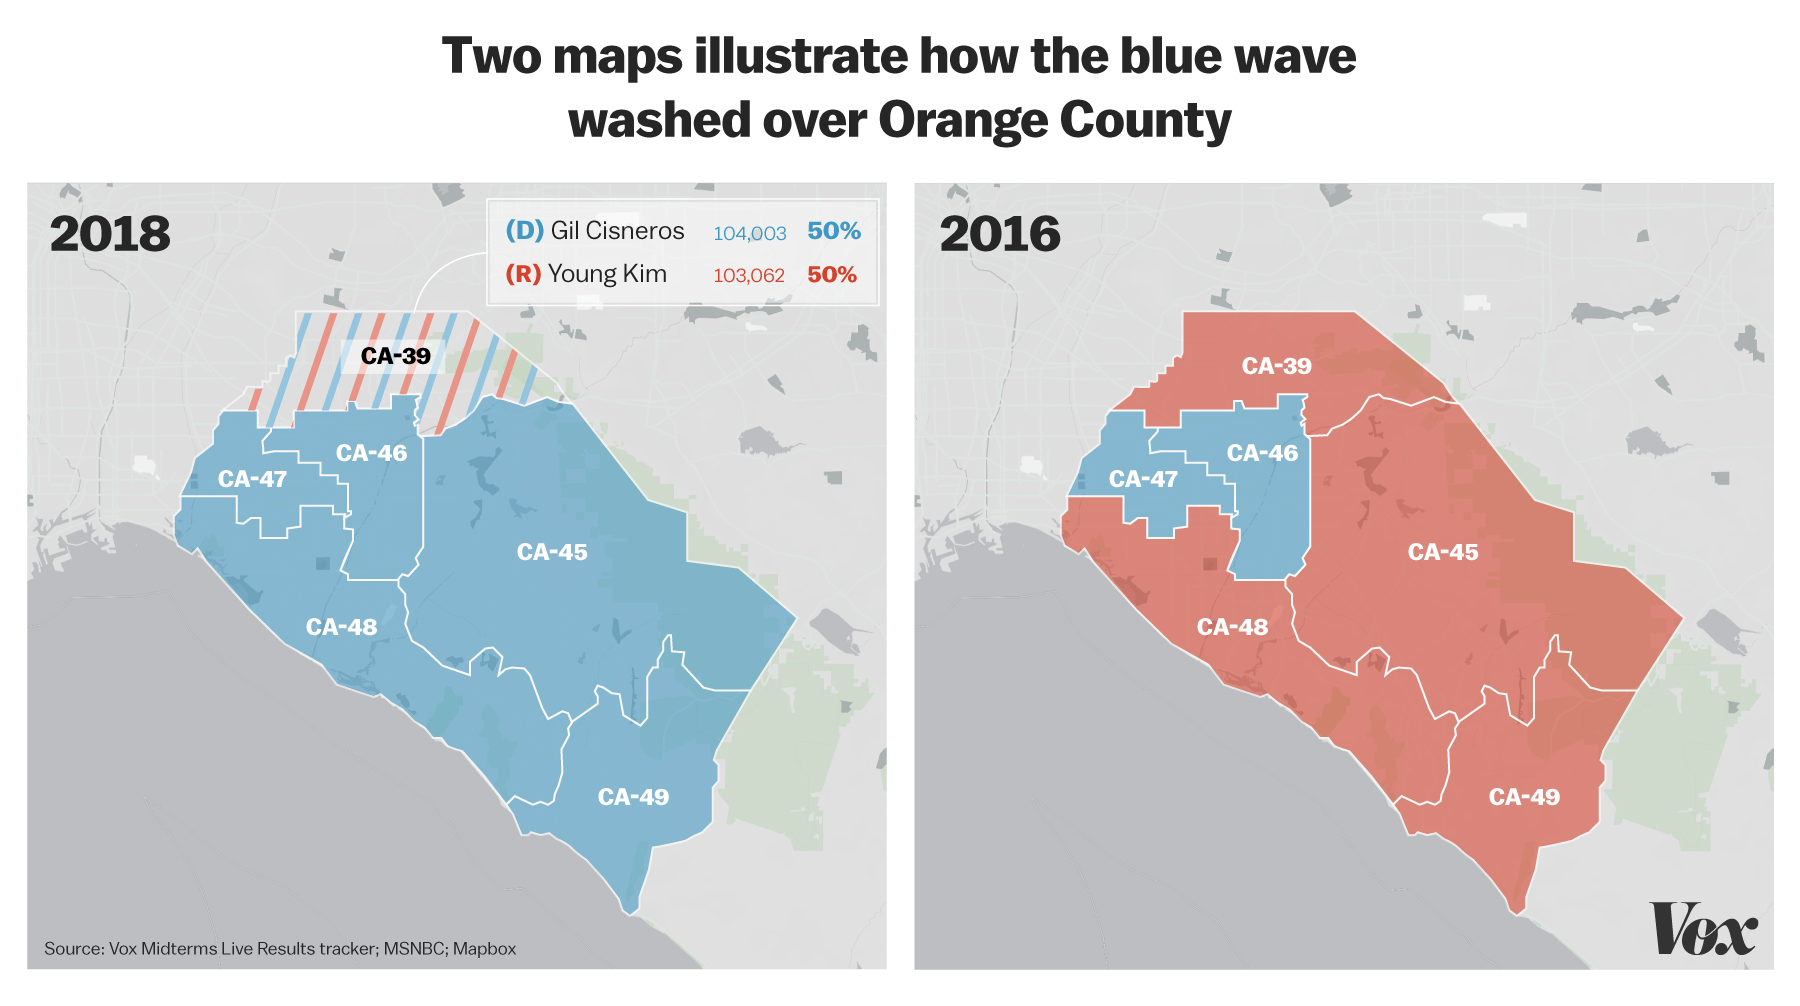 2 maps show how the blue wave washed away Republicans in Orange County